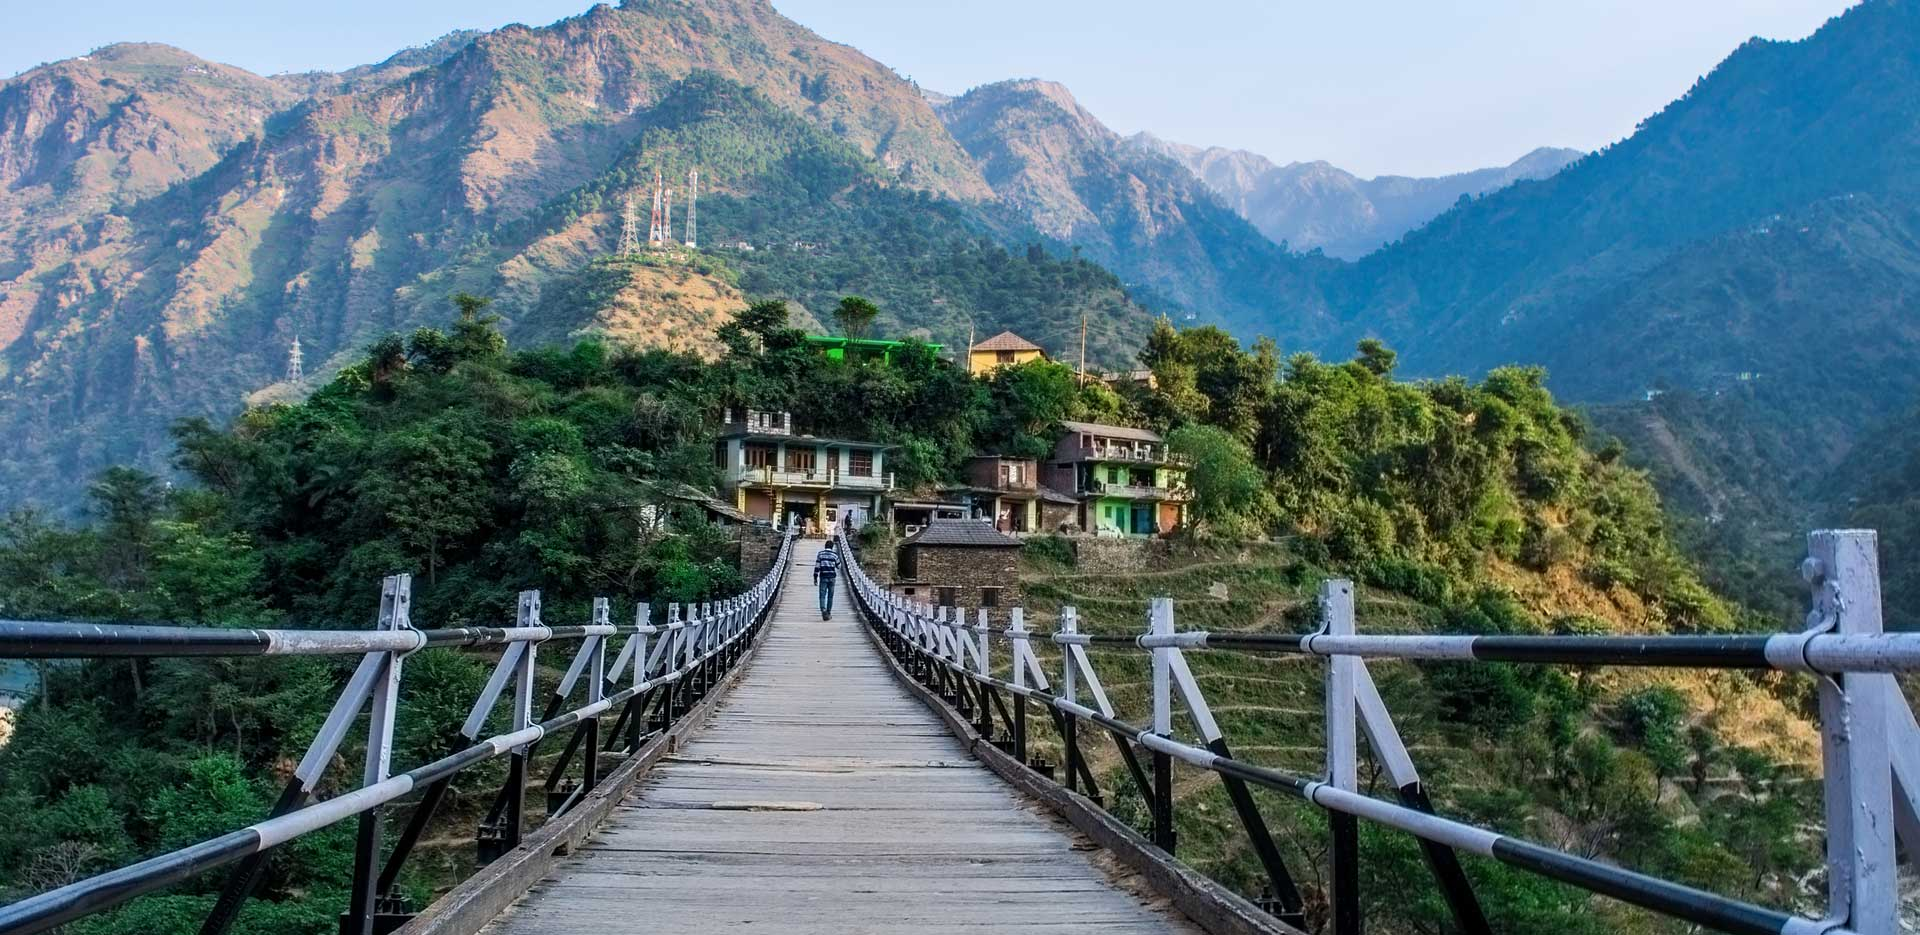 Plan Your Himachal Trip In A Better Way